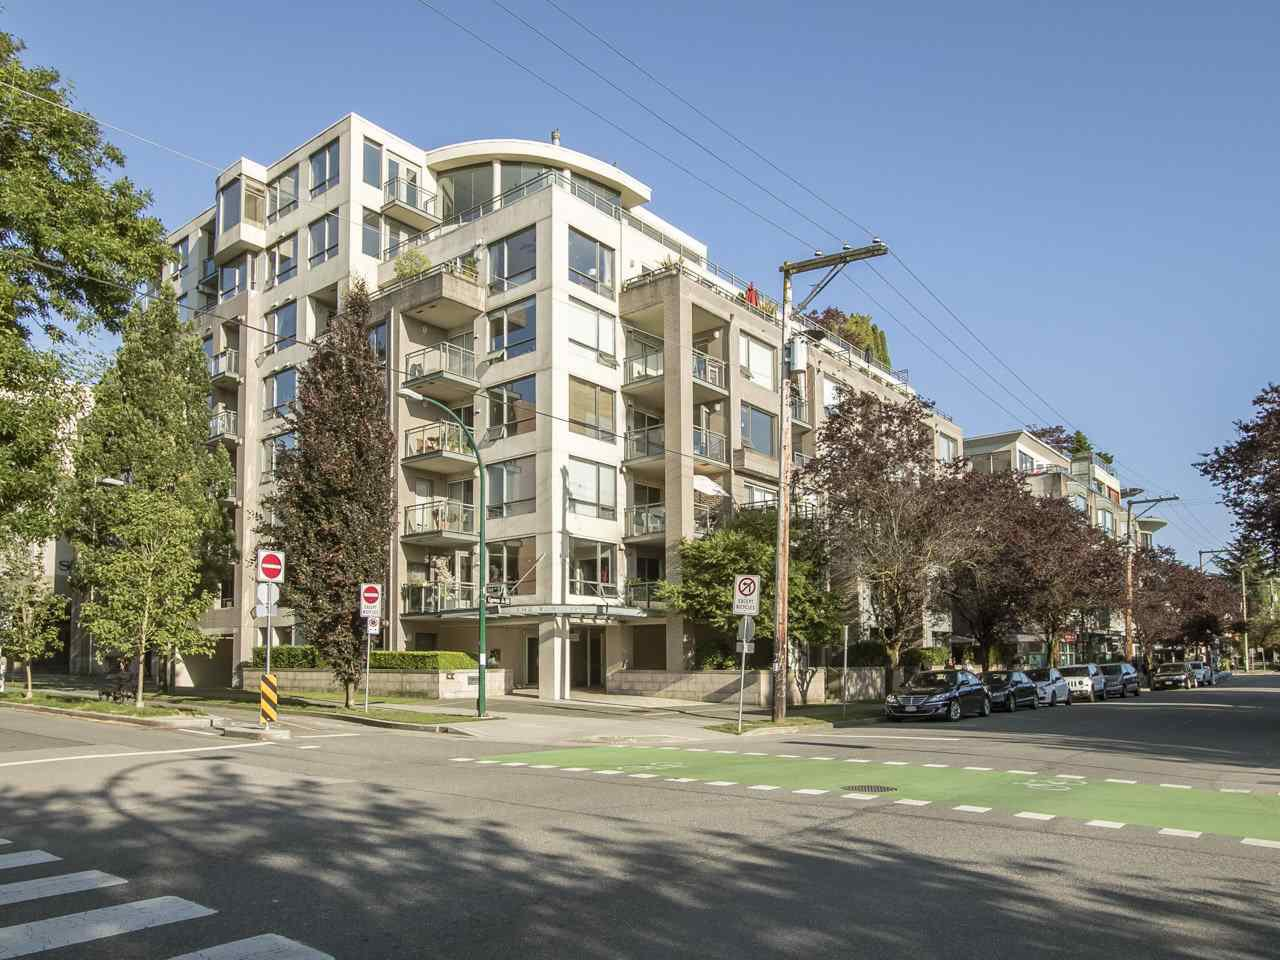 Main Photo: 203 1888 YORK AVENUE in Vancouver: Kitsilano Condo for sale (Vancouver West)  : MLS®# R2183620